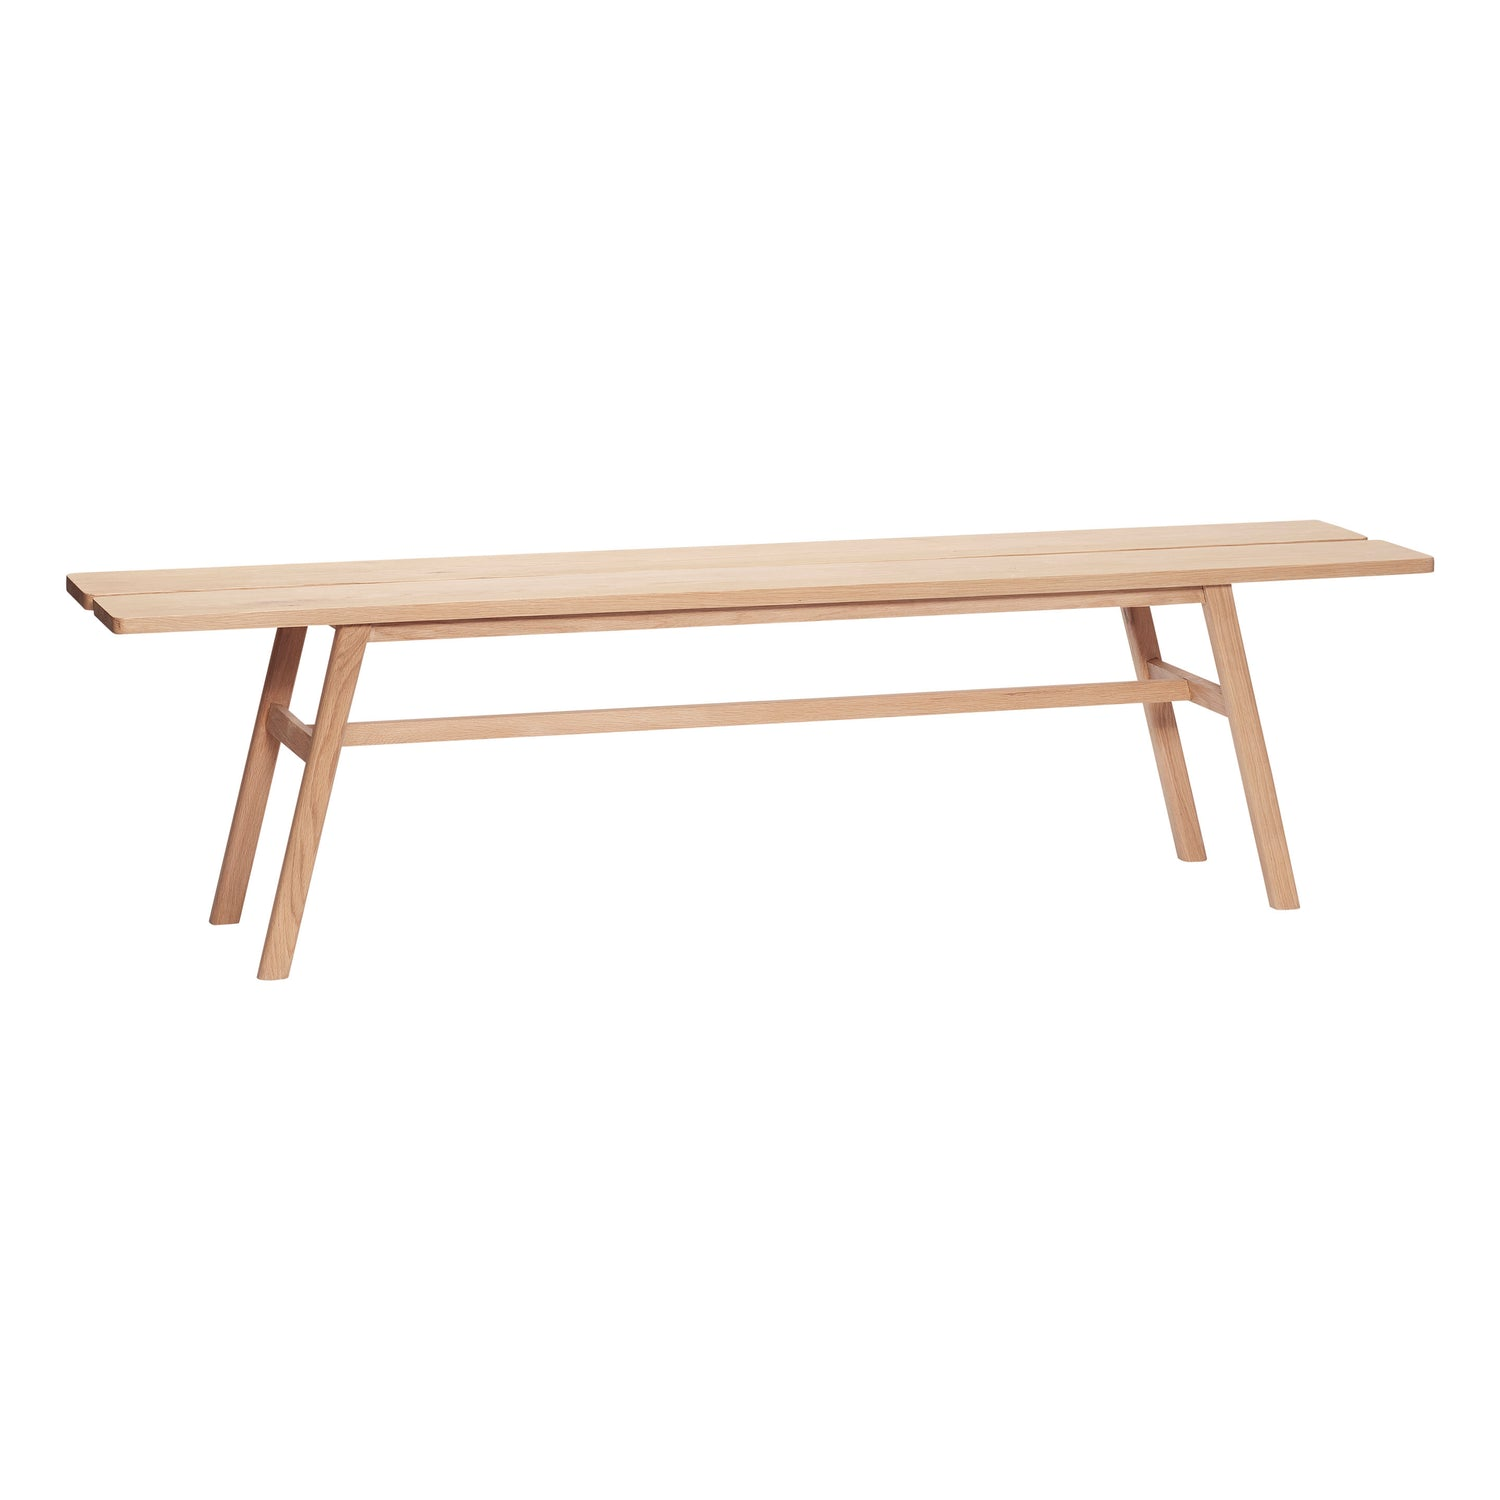 Hübsch scandinavian wooden oak bench